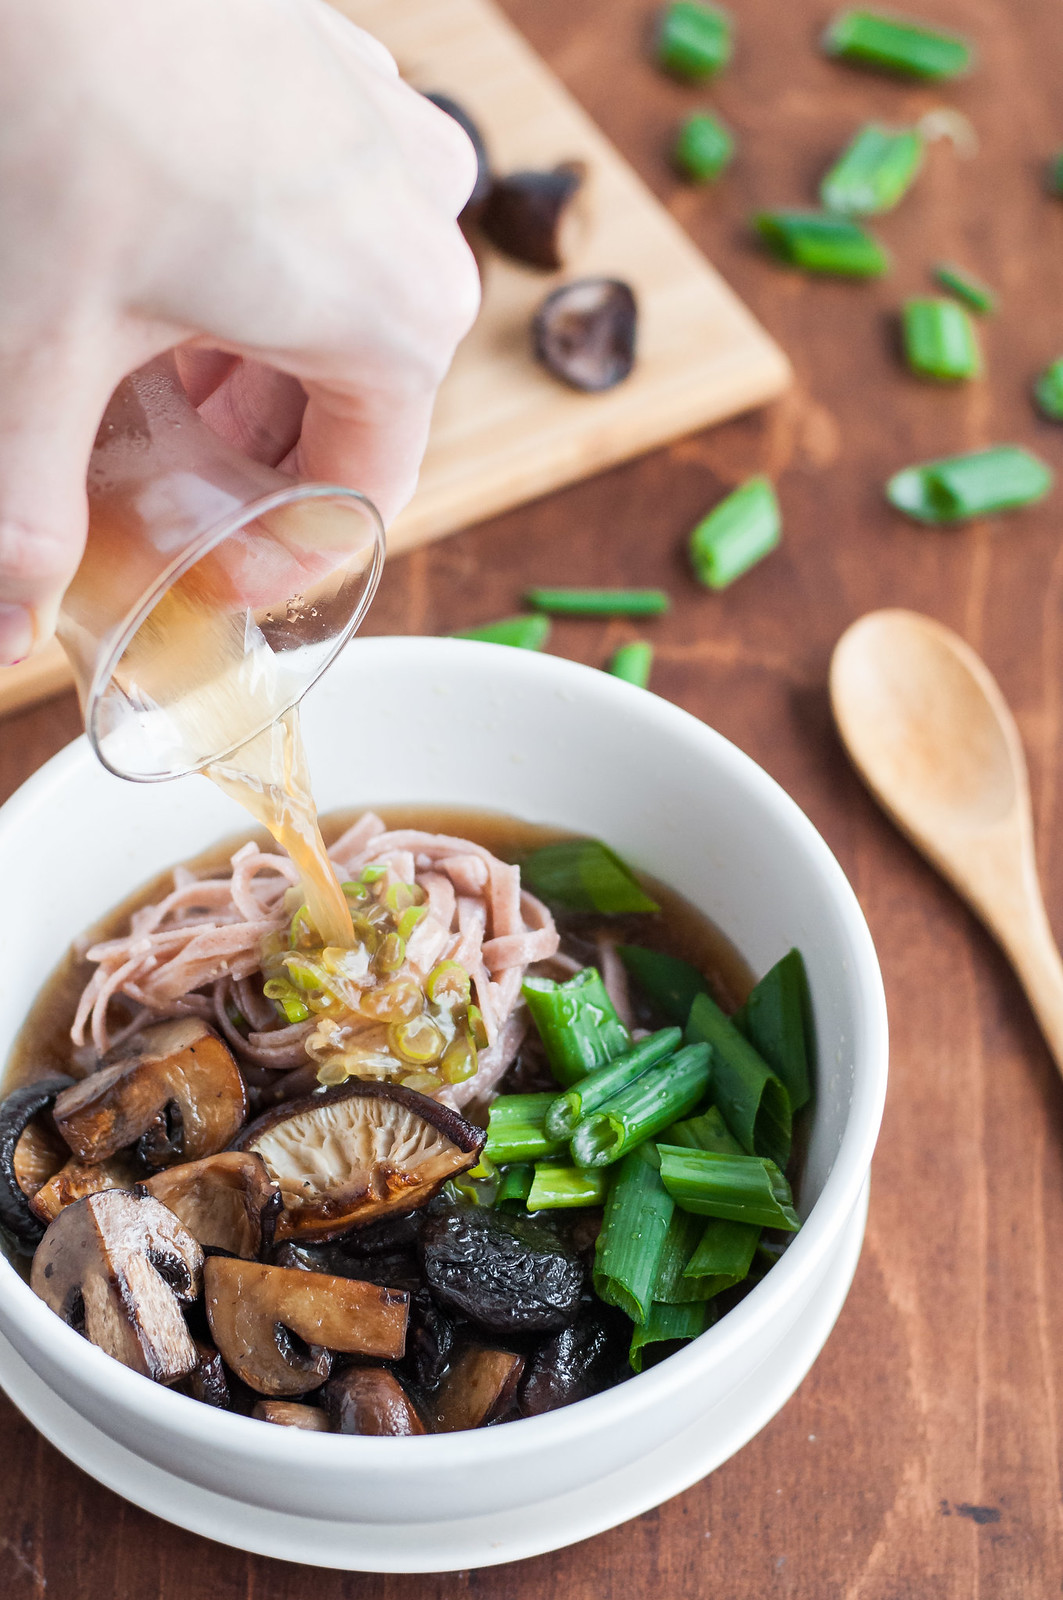 Roasted mushroom noodle bowls with homemade broth